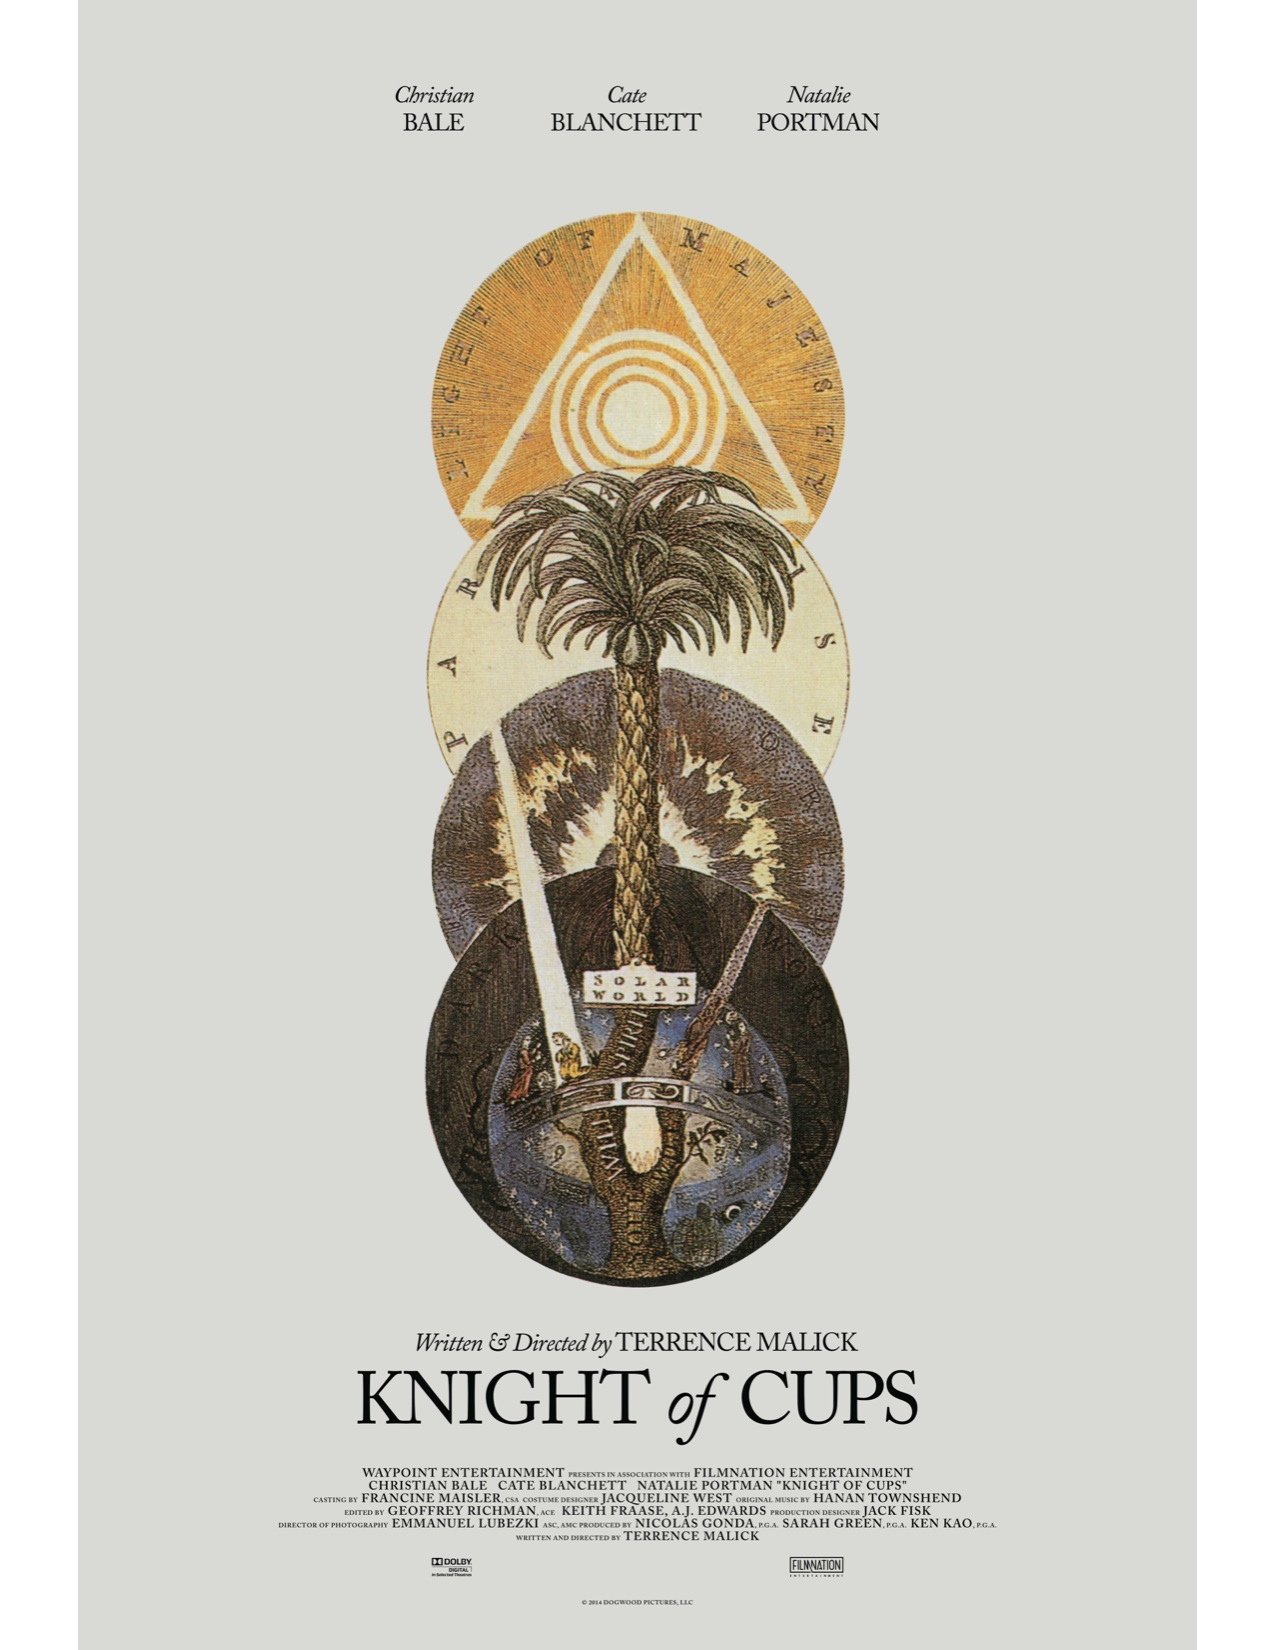 Terrence Malick: Knight of Cups – The Mookse and the Gripes